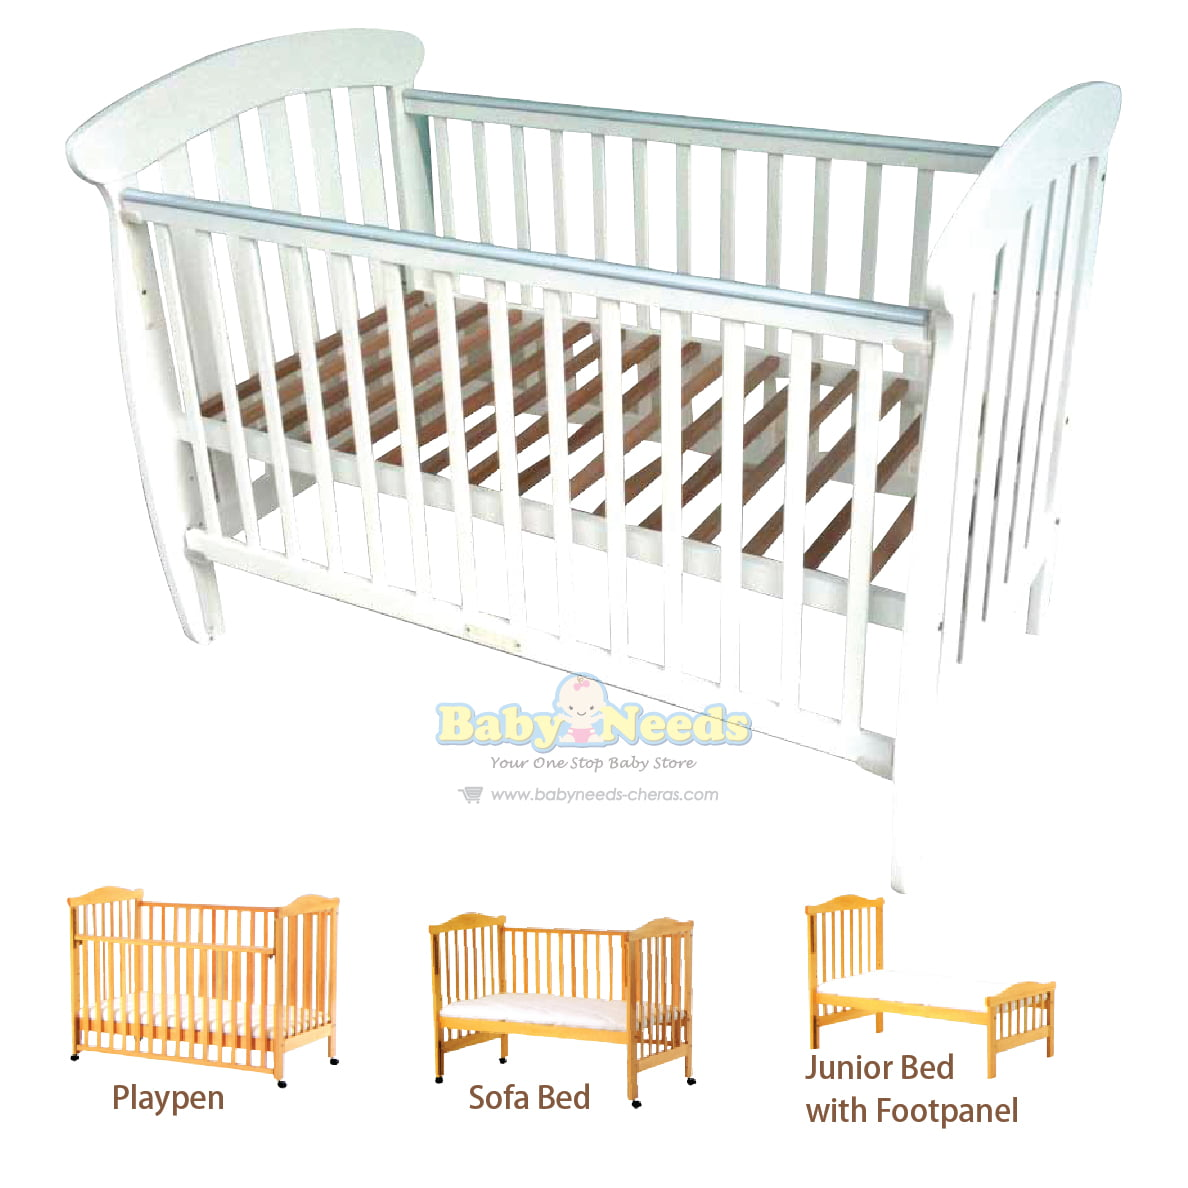 Babylove baby cot 4 in 1 convertible 28 x 52 package baby needs online store malaysia